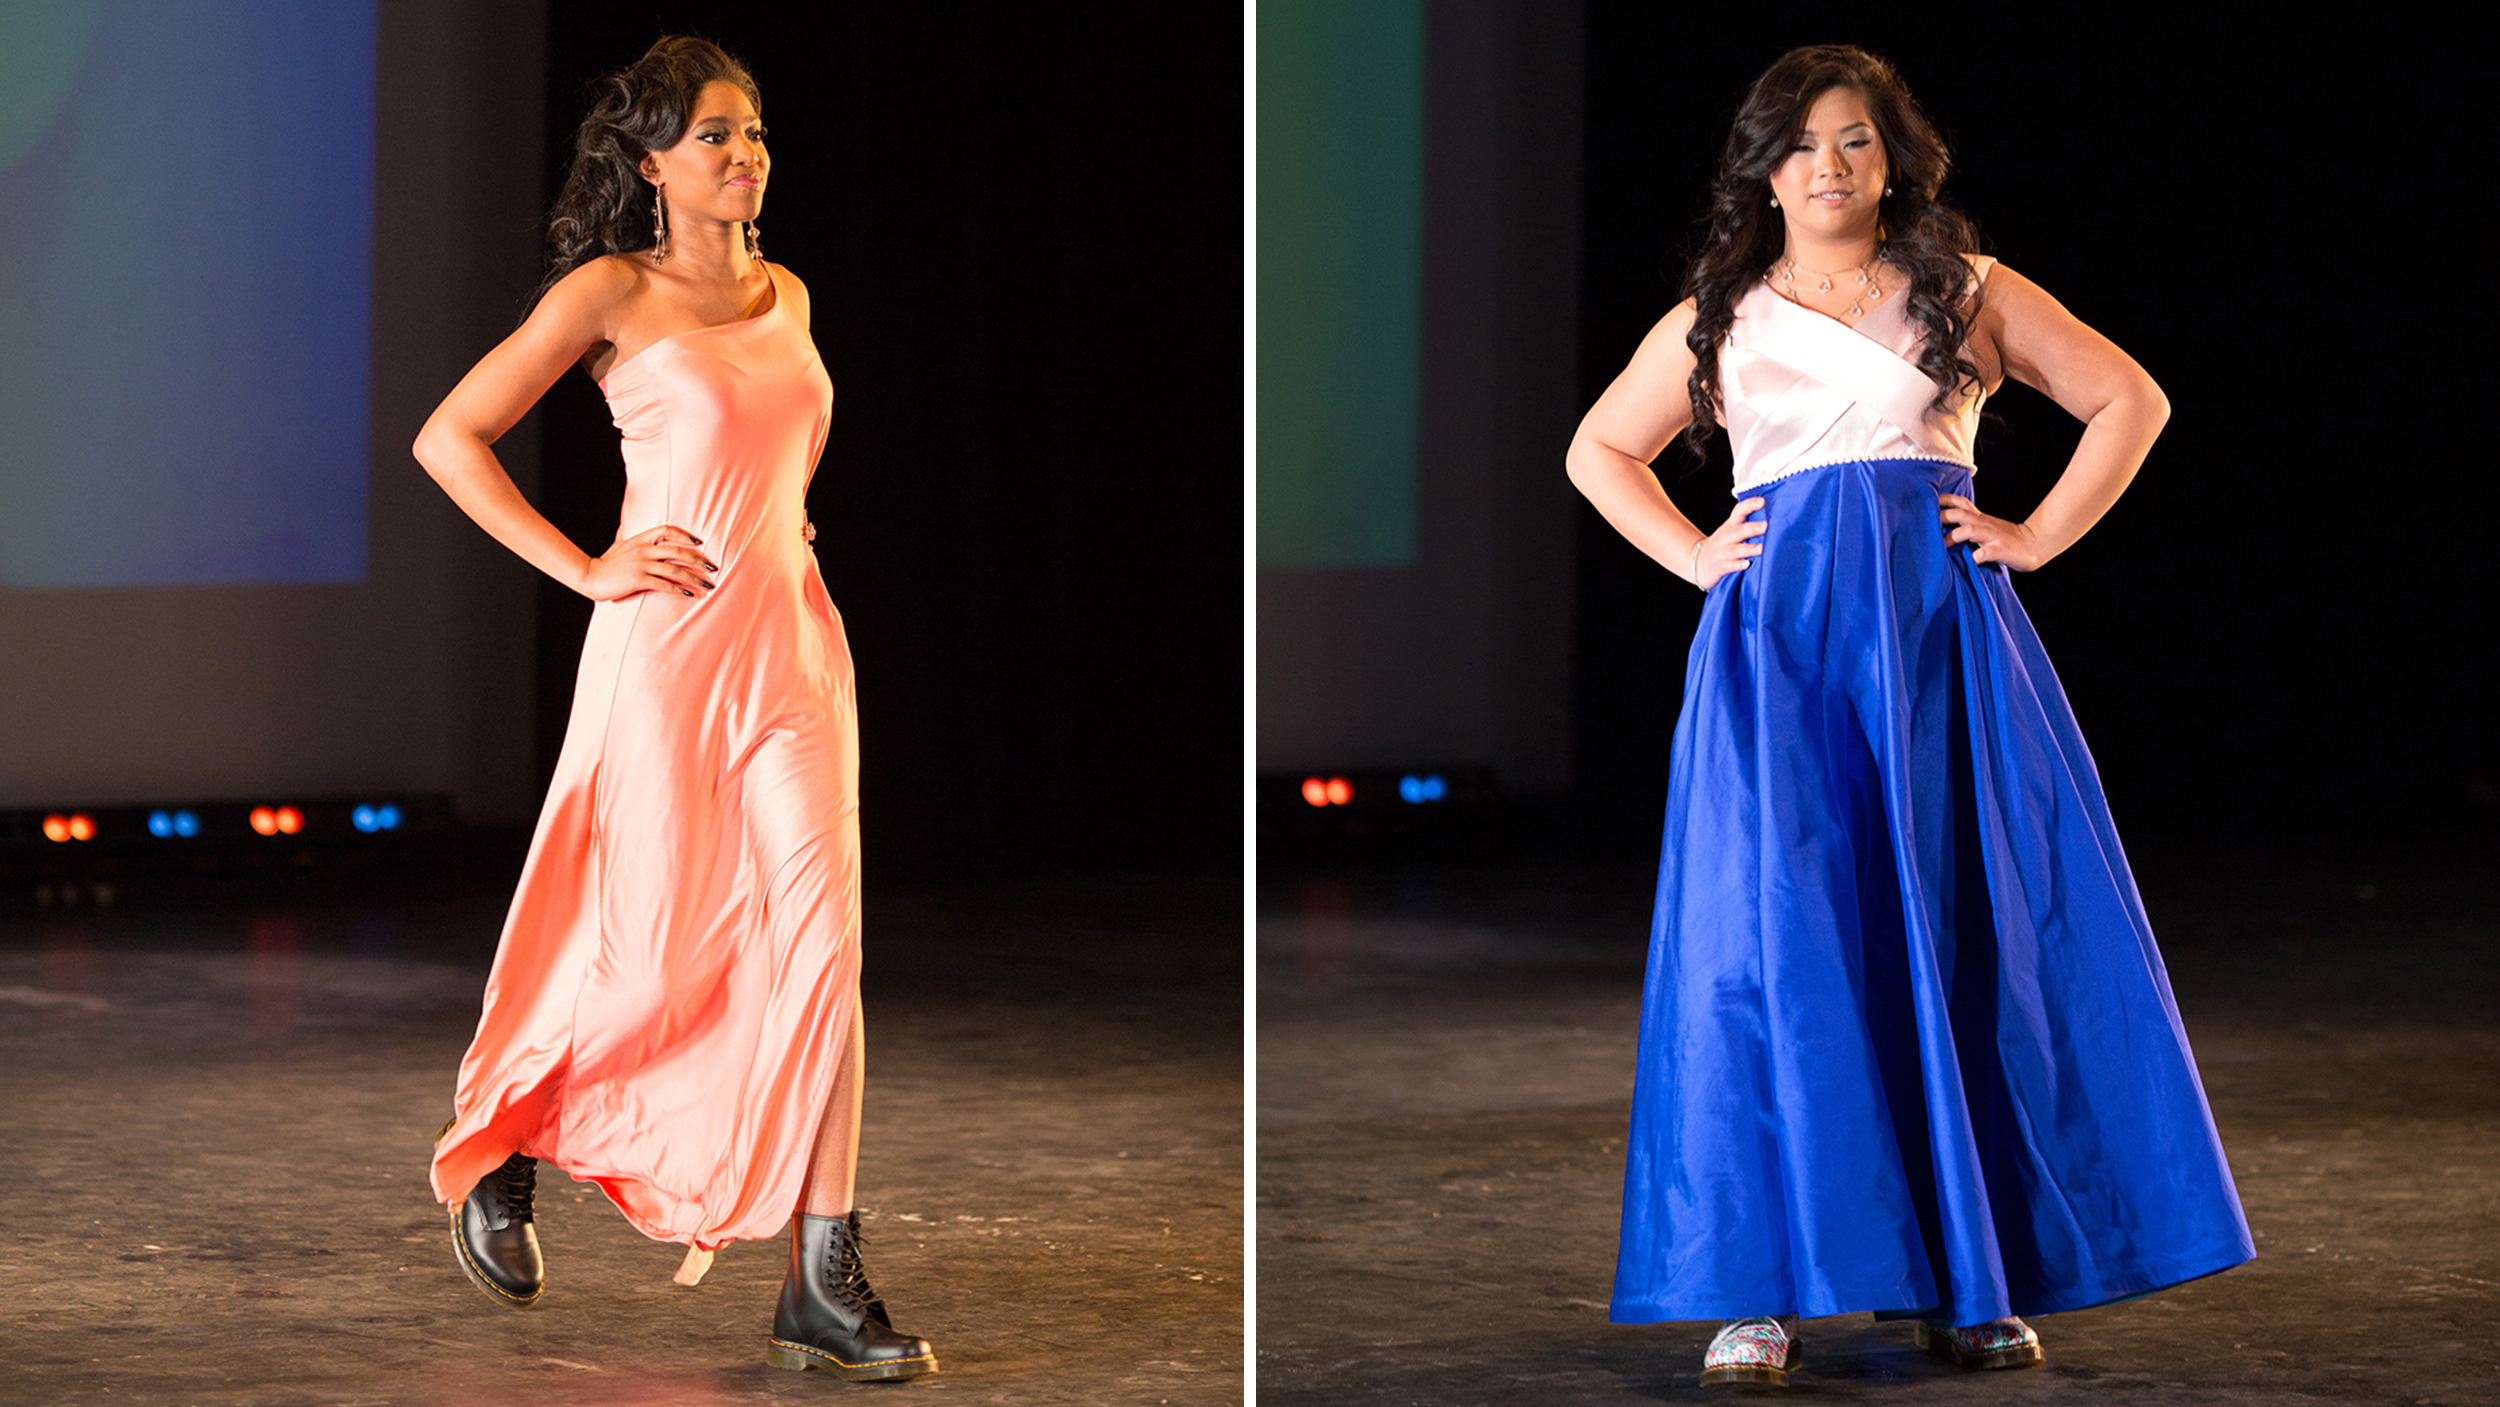 Top Students Earn Designer Prom Dresses (and Lesson In